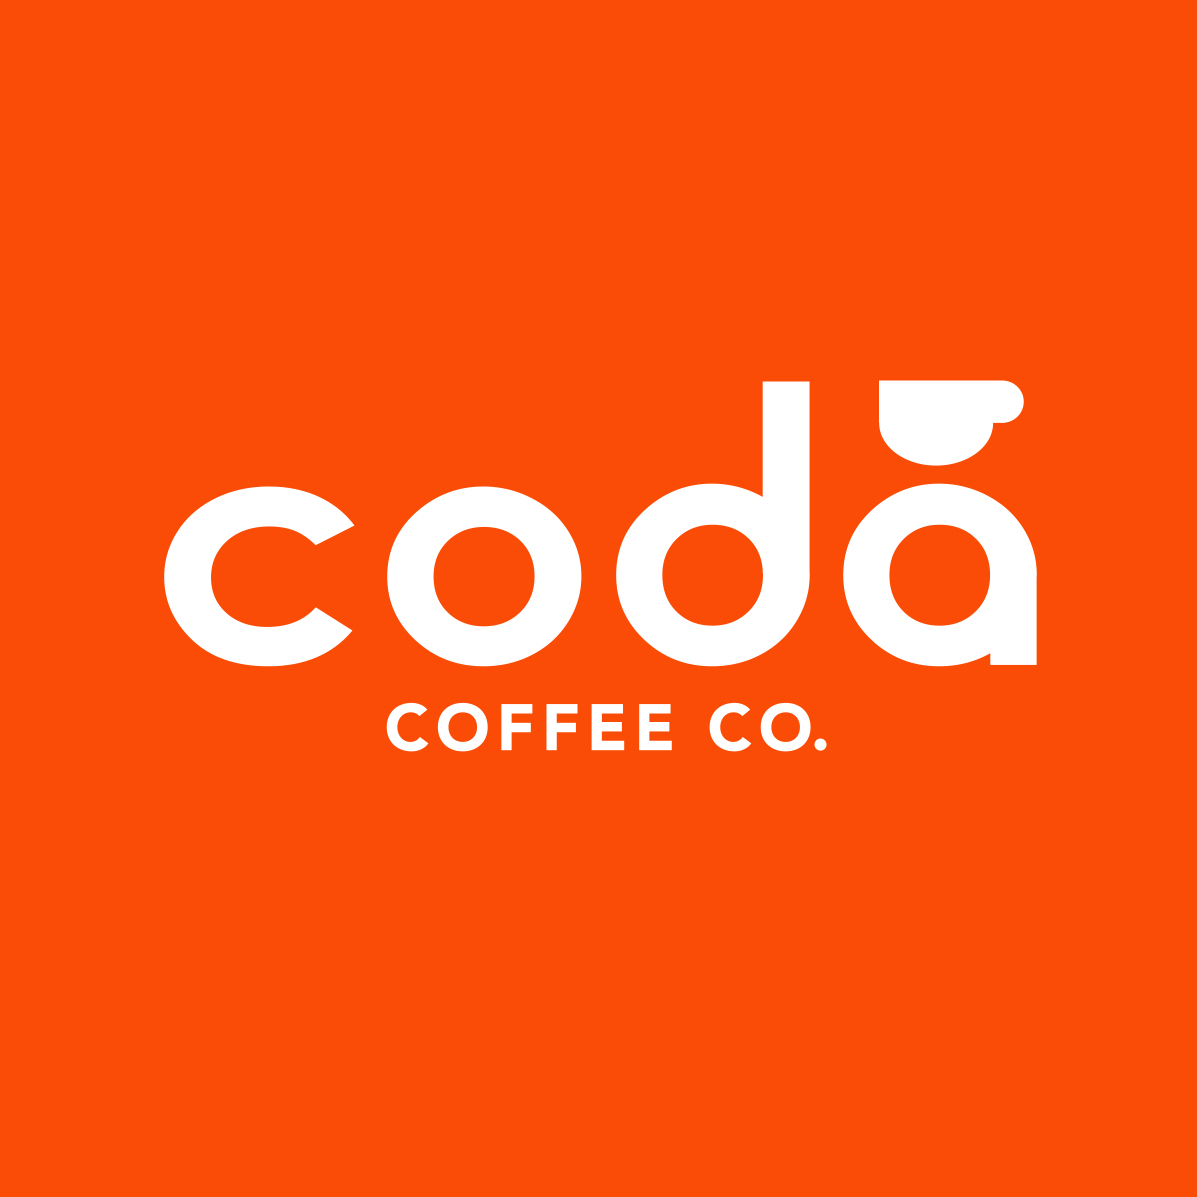 Coda Coffee Company